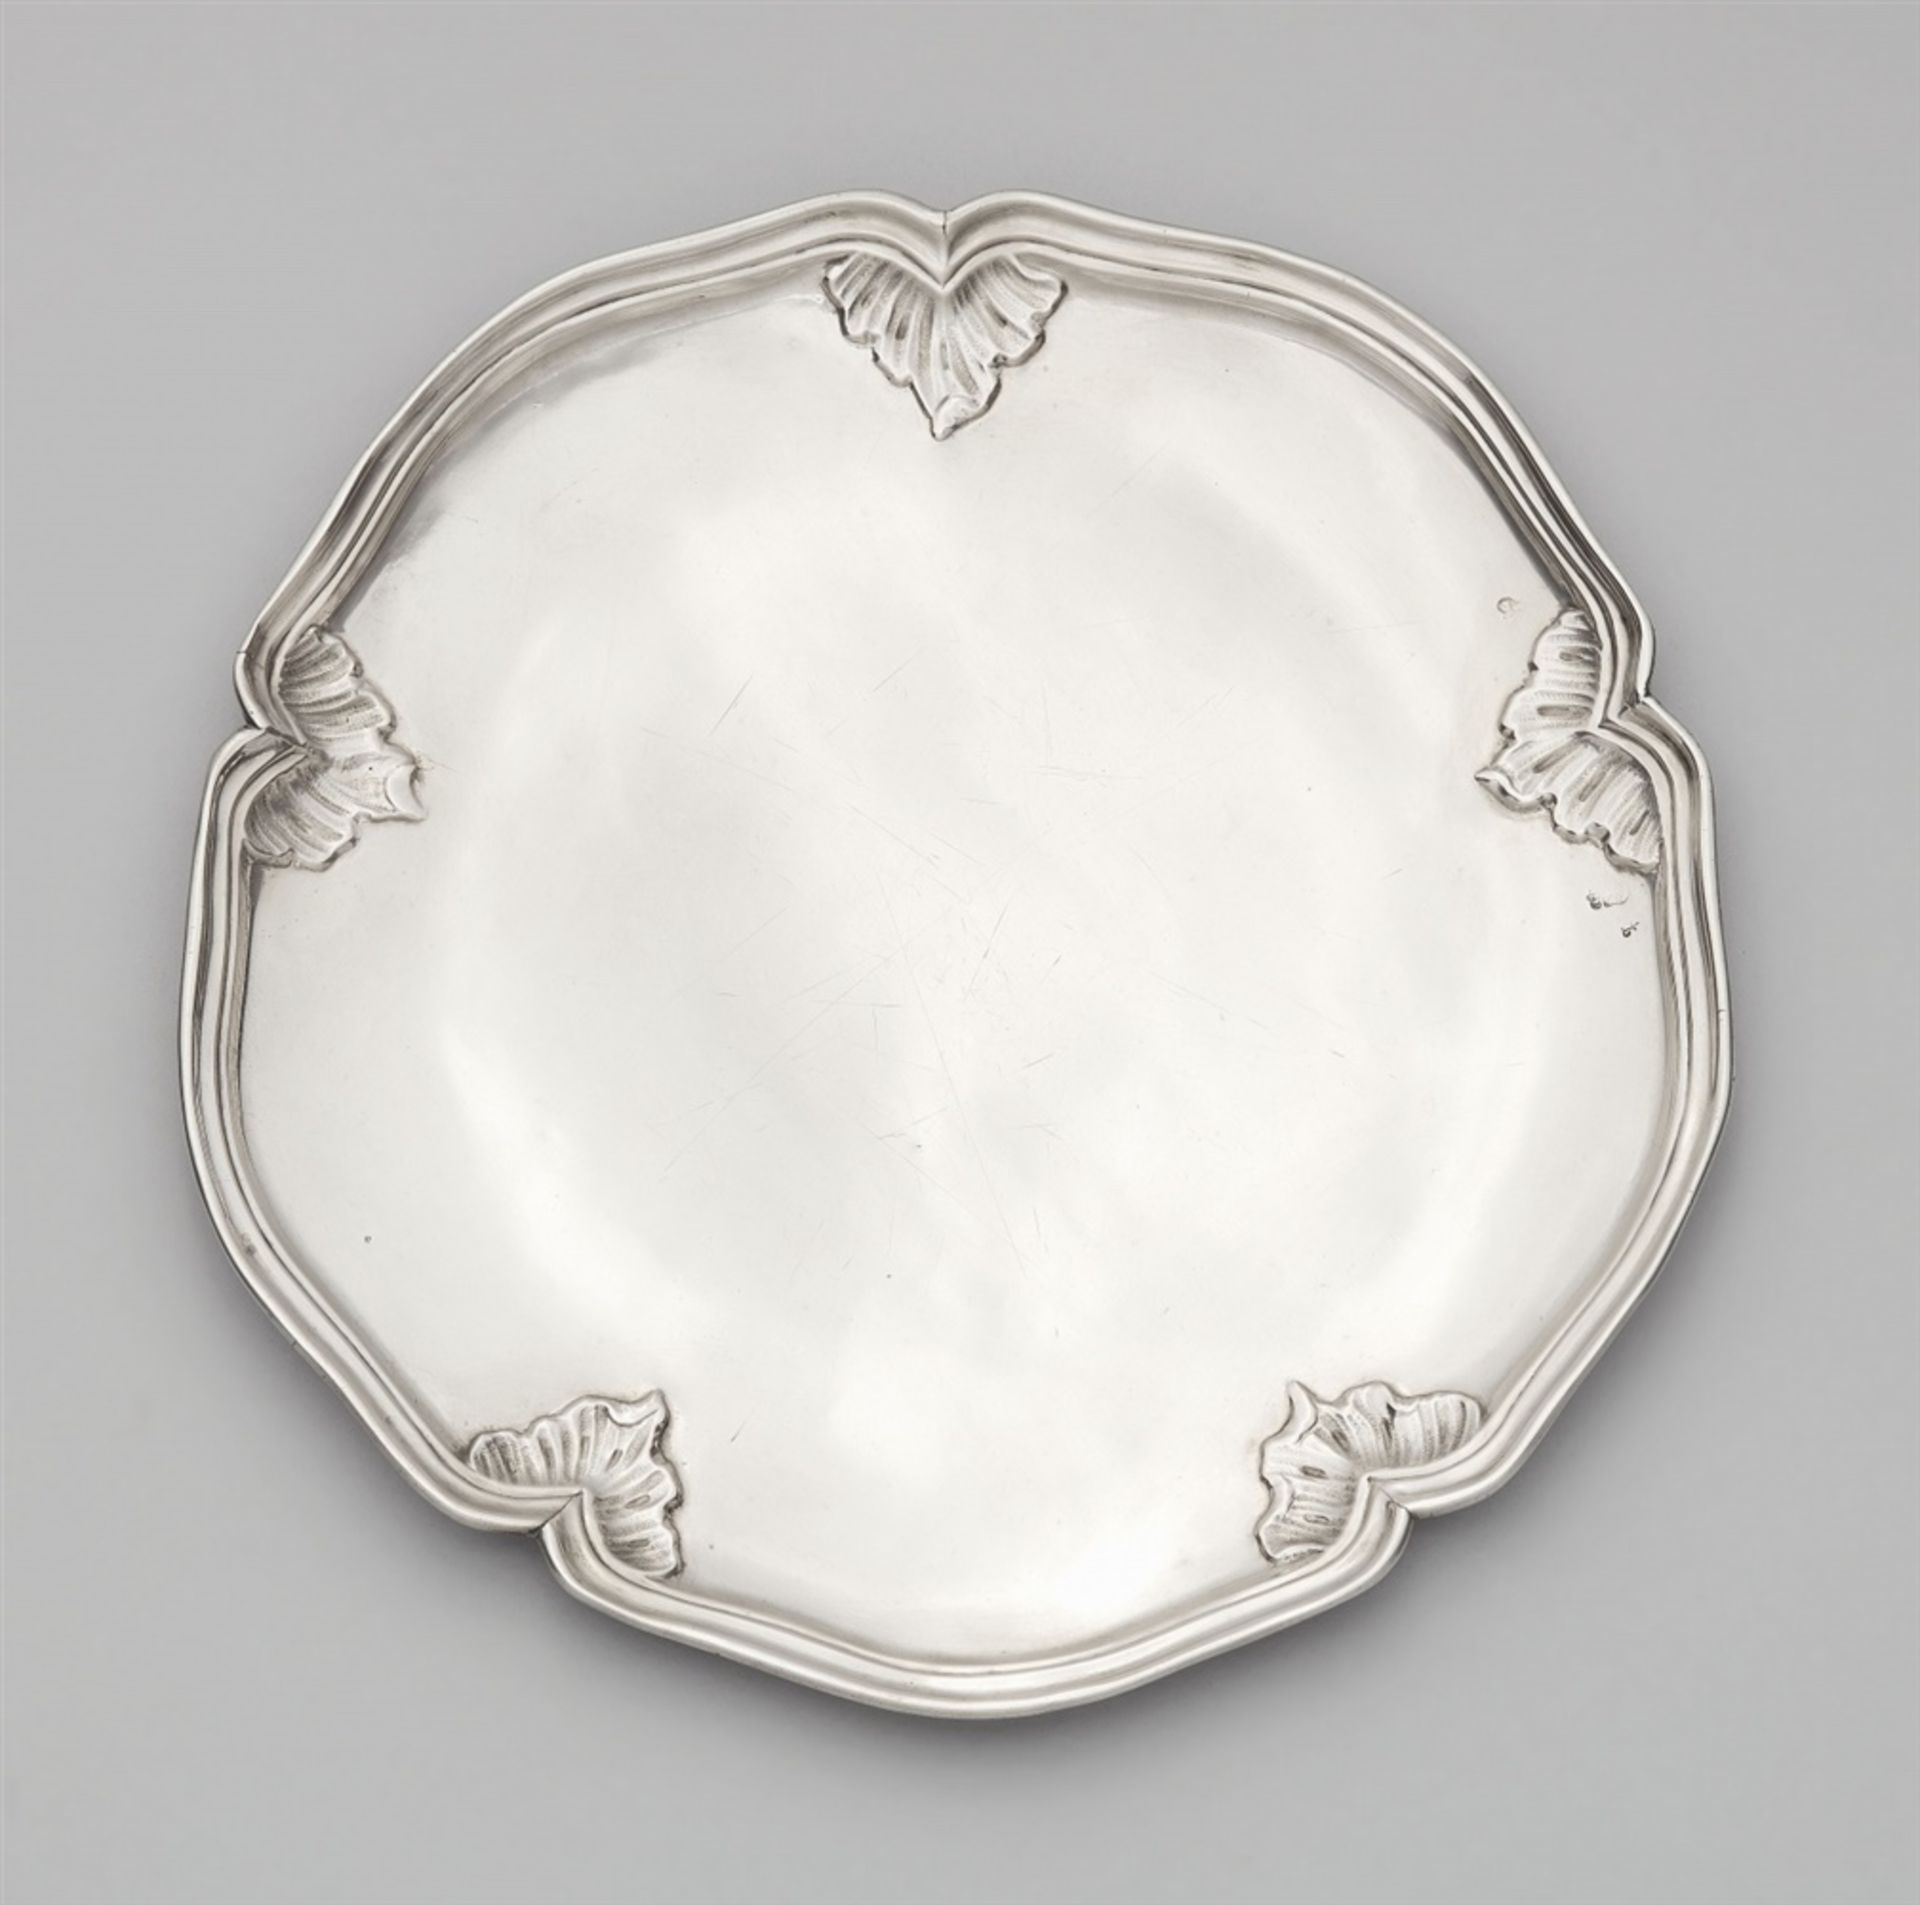 Los 748 - A Dresden Rococo silver platterSilver. A round, scalloped platter, the moulded rim decorated with